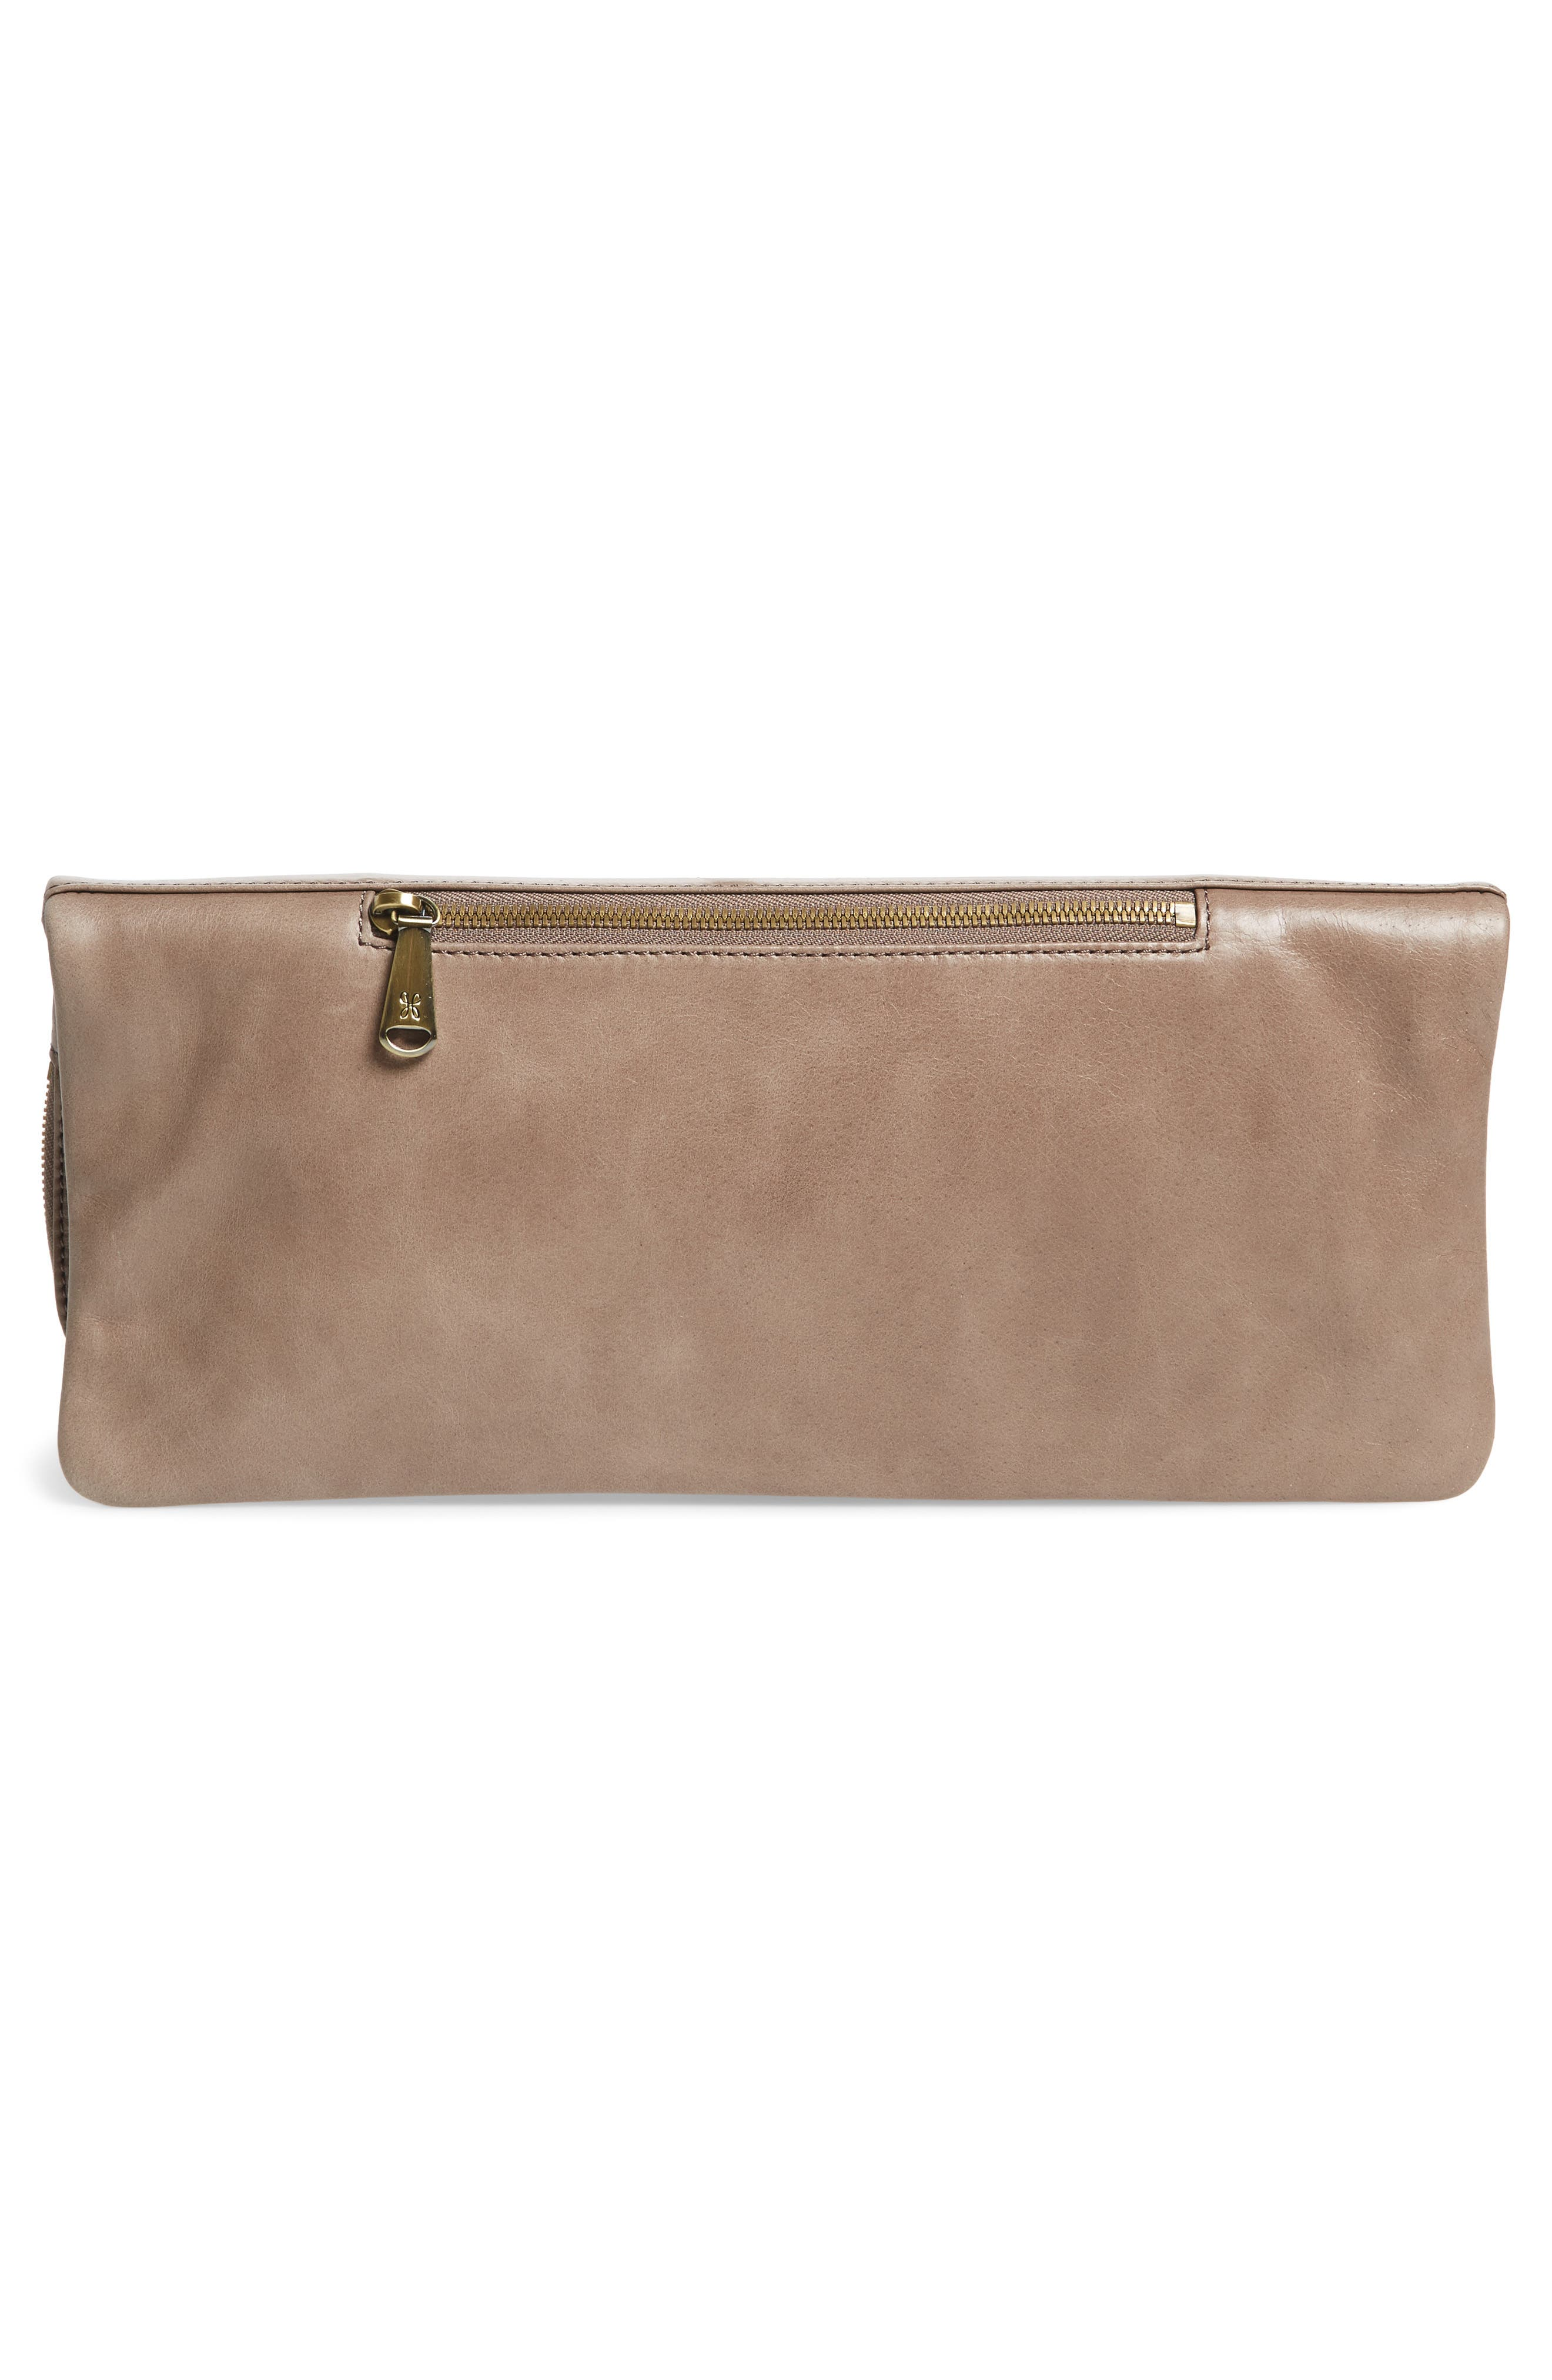 Raine Calfskin Leather Foldover Clutch,                             Alternate thumbnail 11, color,